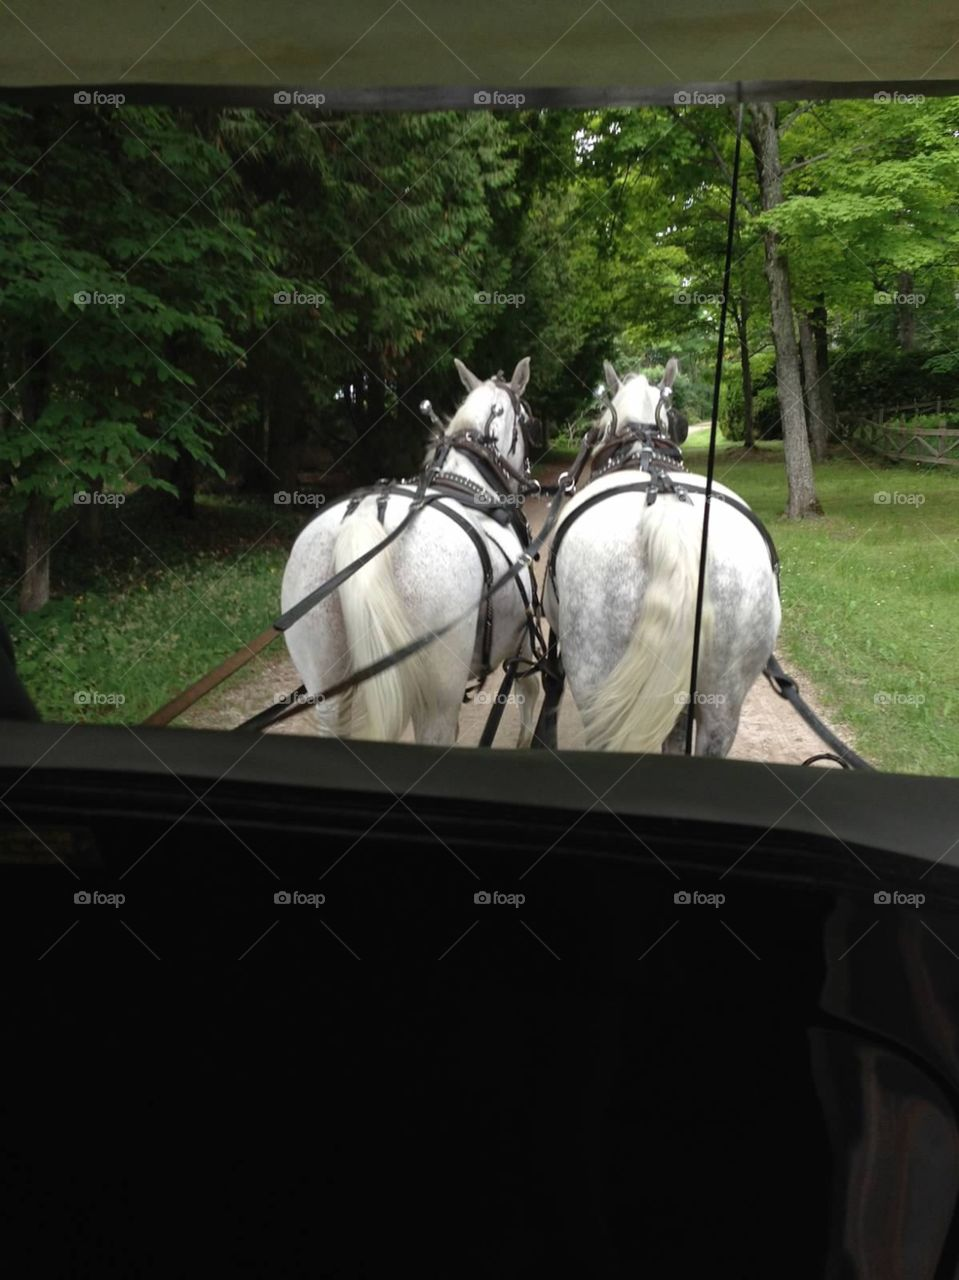 Horse Drawn Carriage . Riding in a horse drawn carriage touring Mackinaw Island, Michigan.